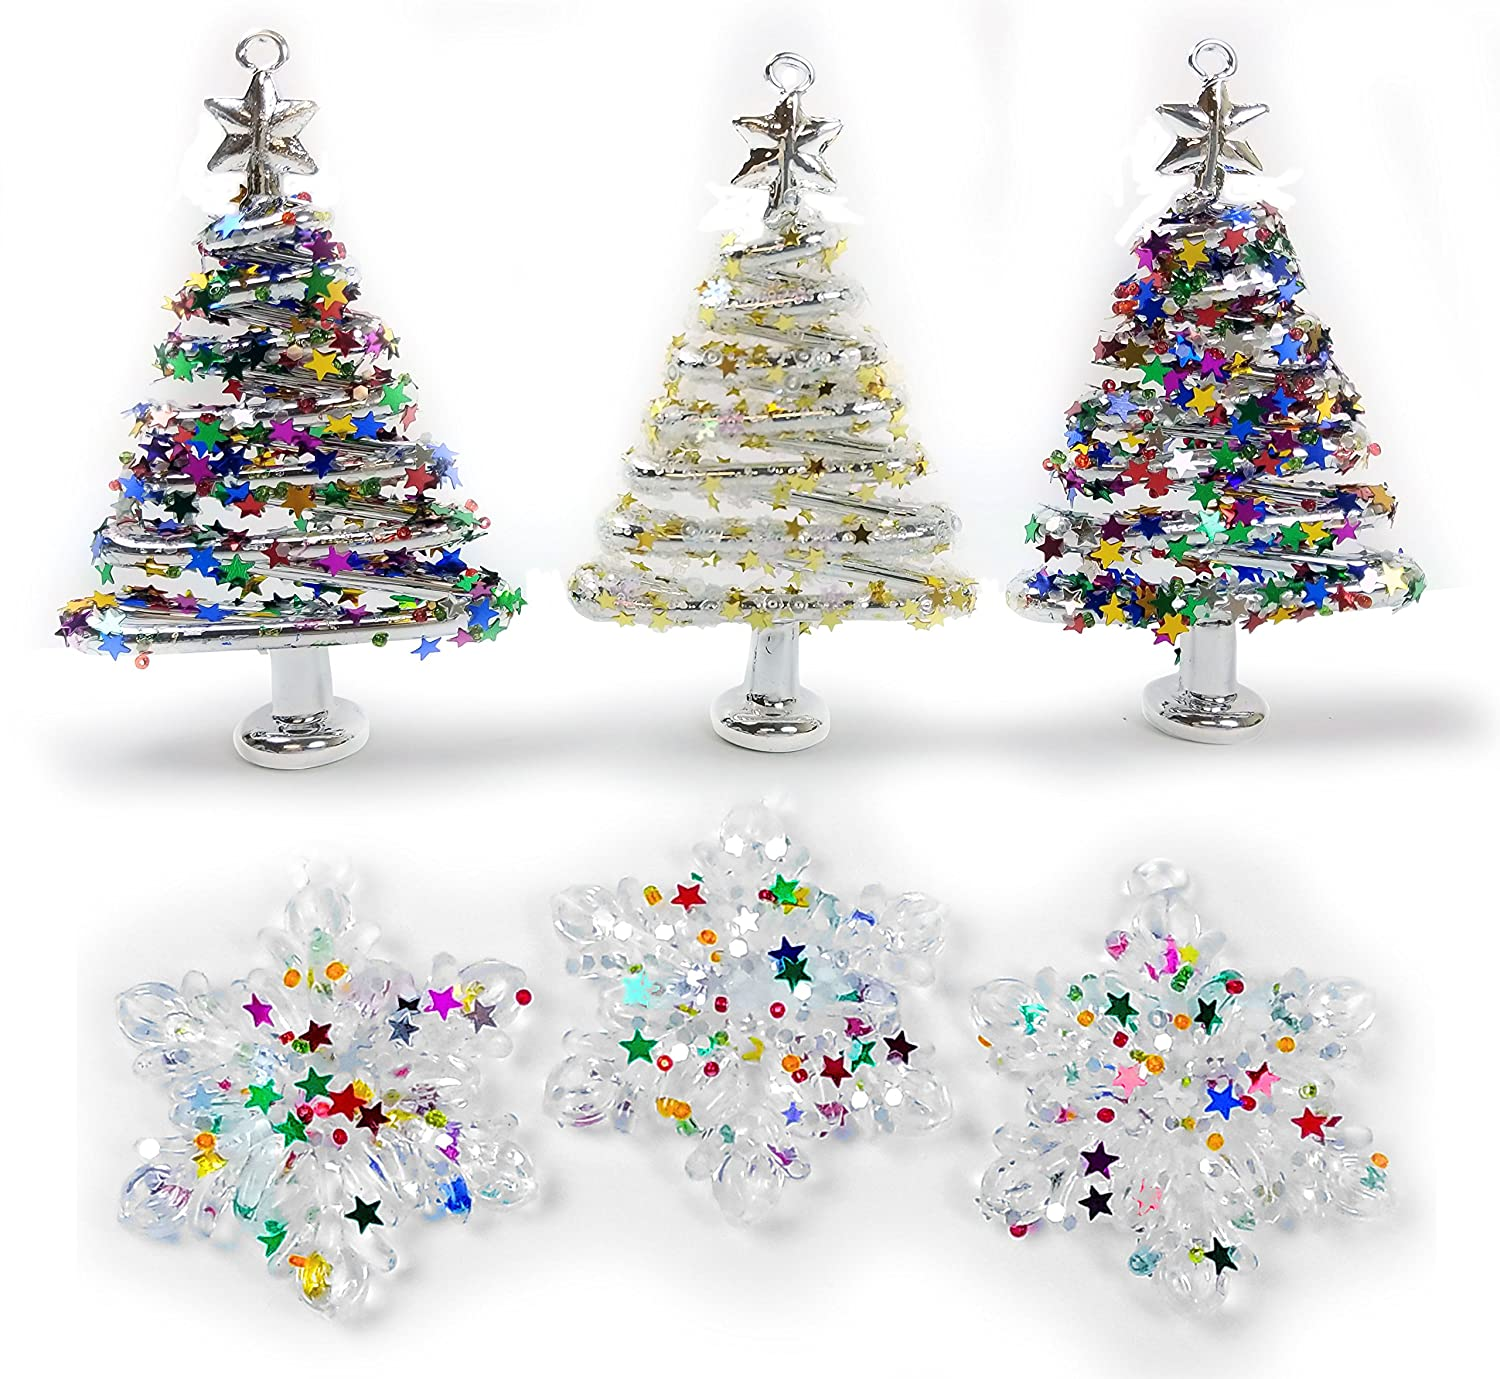 Banberry Designs Glass Christmas Tree Ornament Set Set Of 6 Assorted Sparkly Trees And Snowflakes Glittered Ornaments Boxed Whimsical Xmas